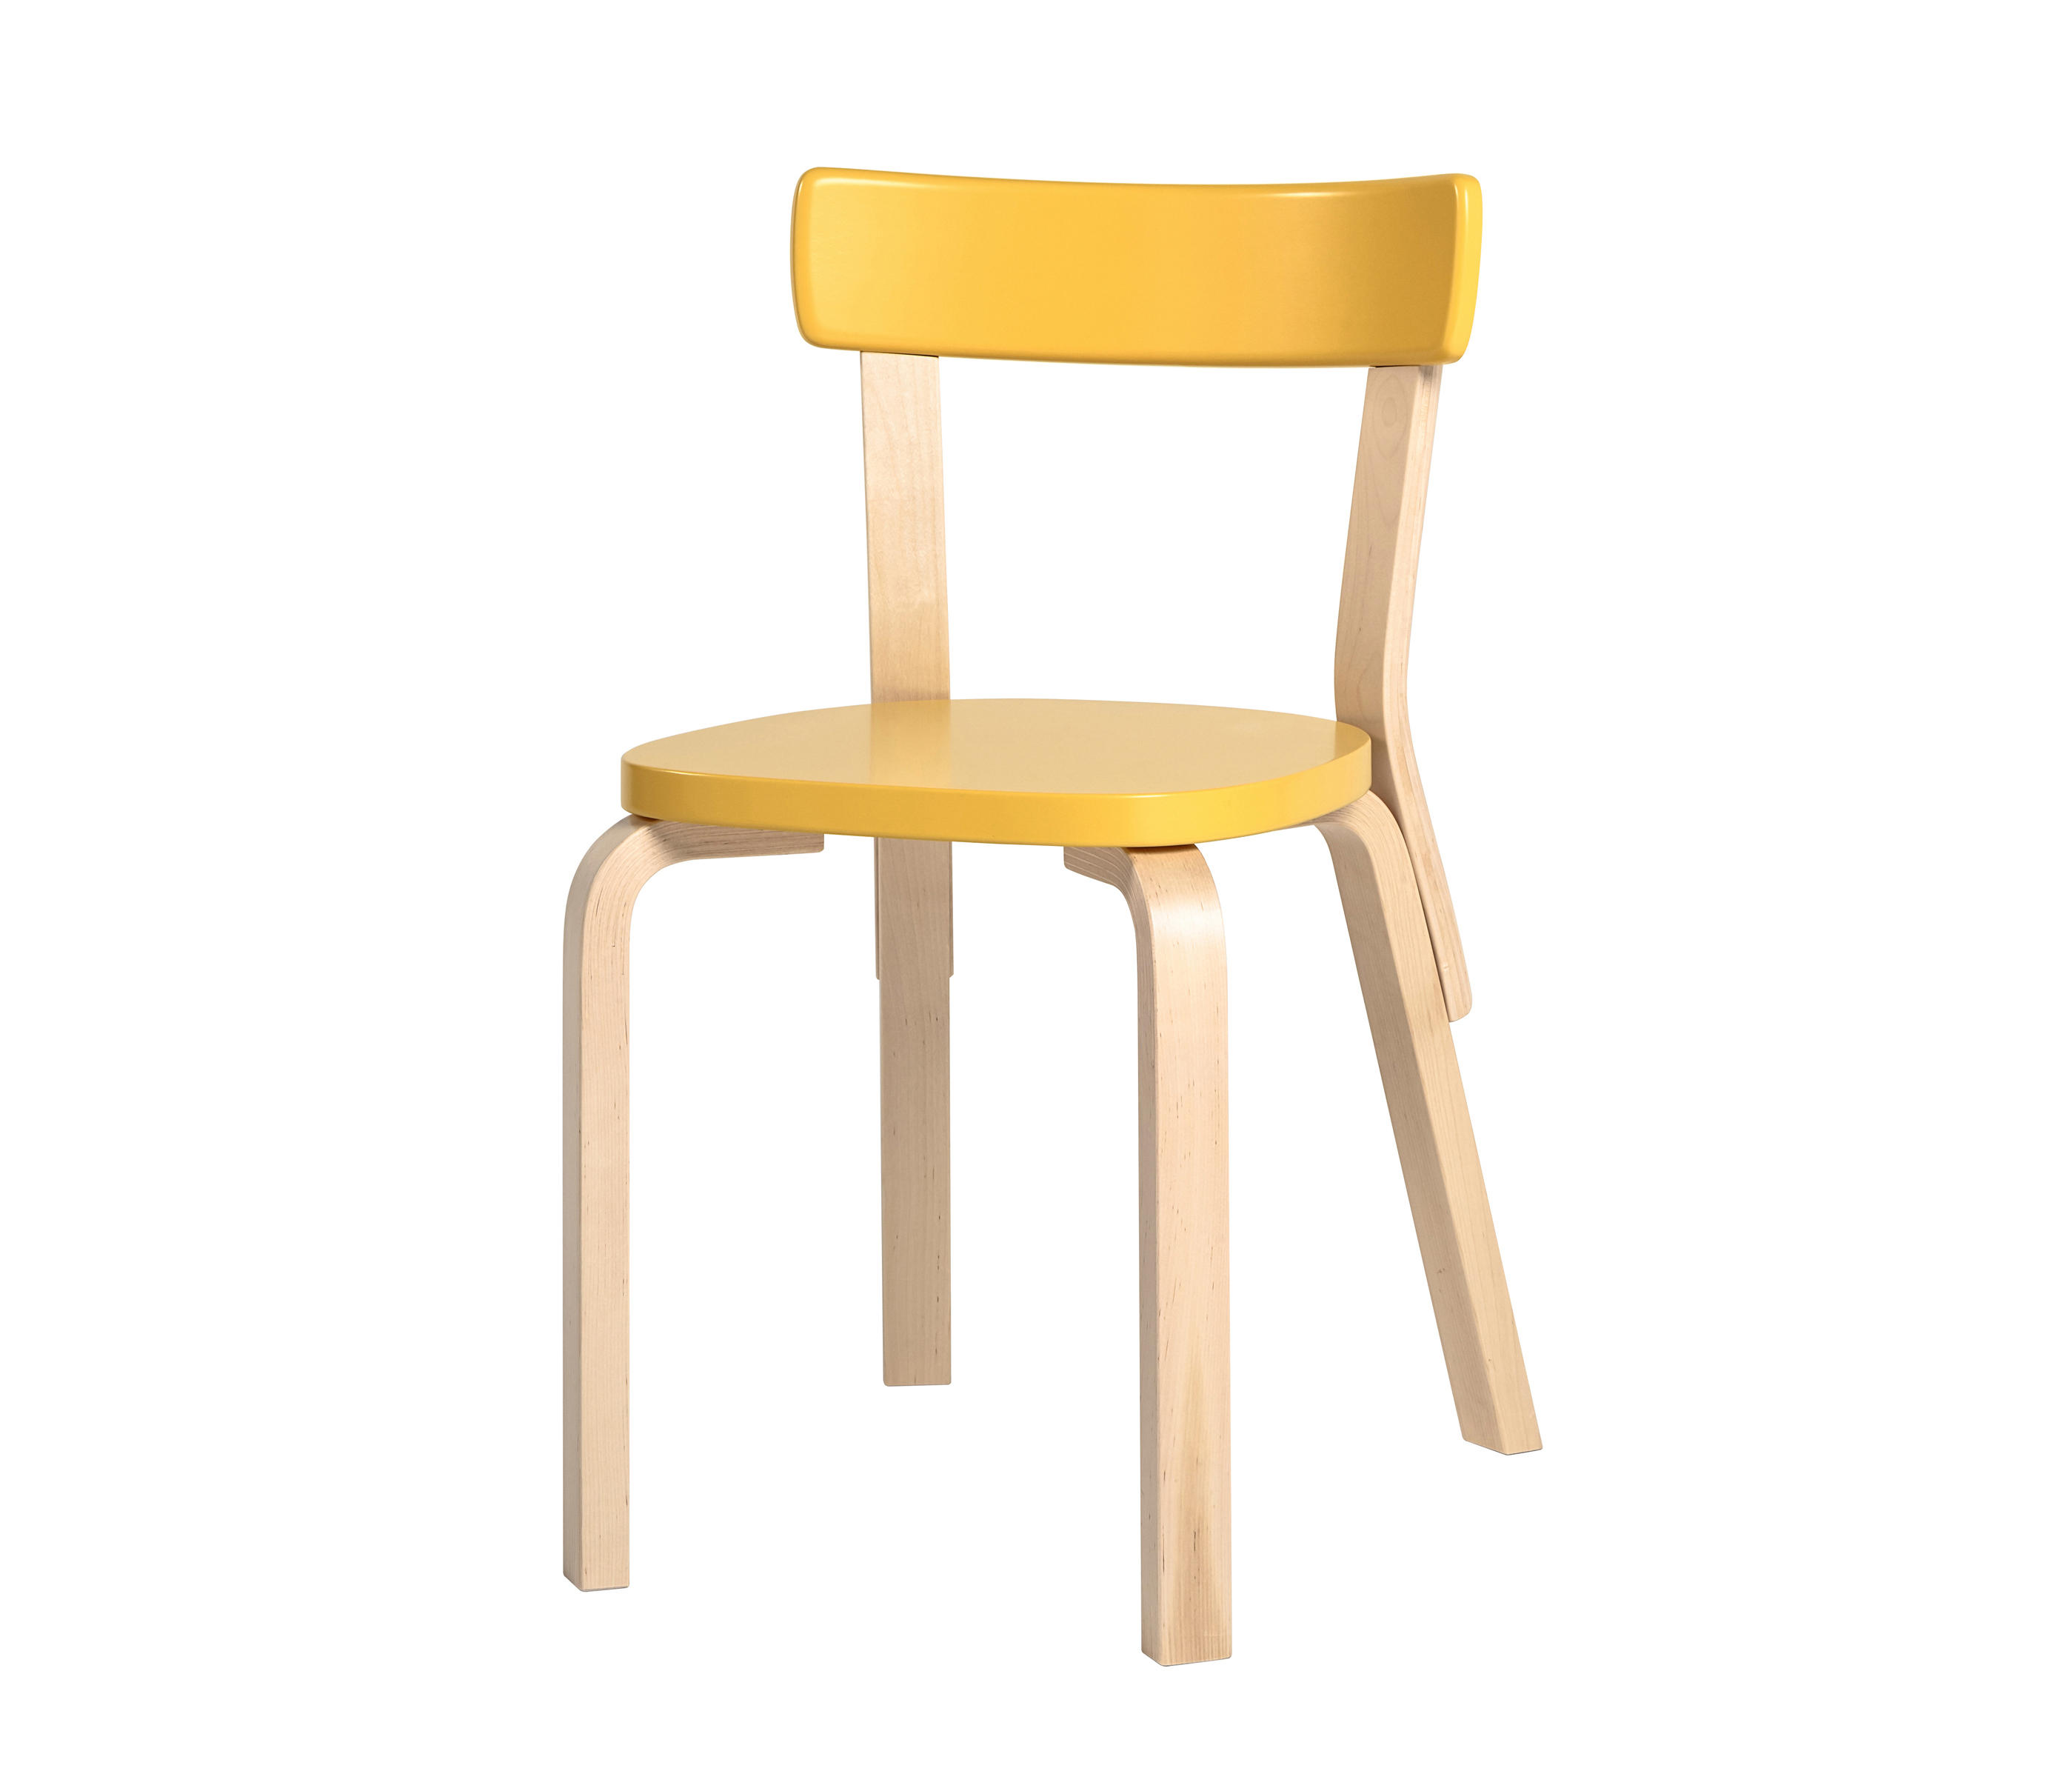 chair 69 edition paimio chairs from artek architonic